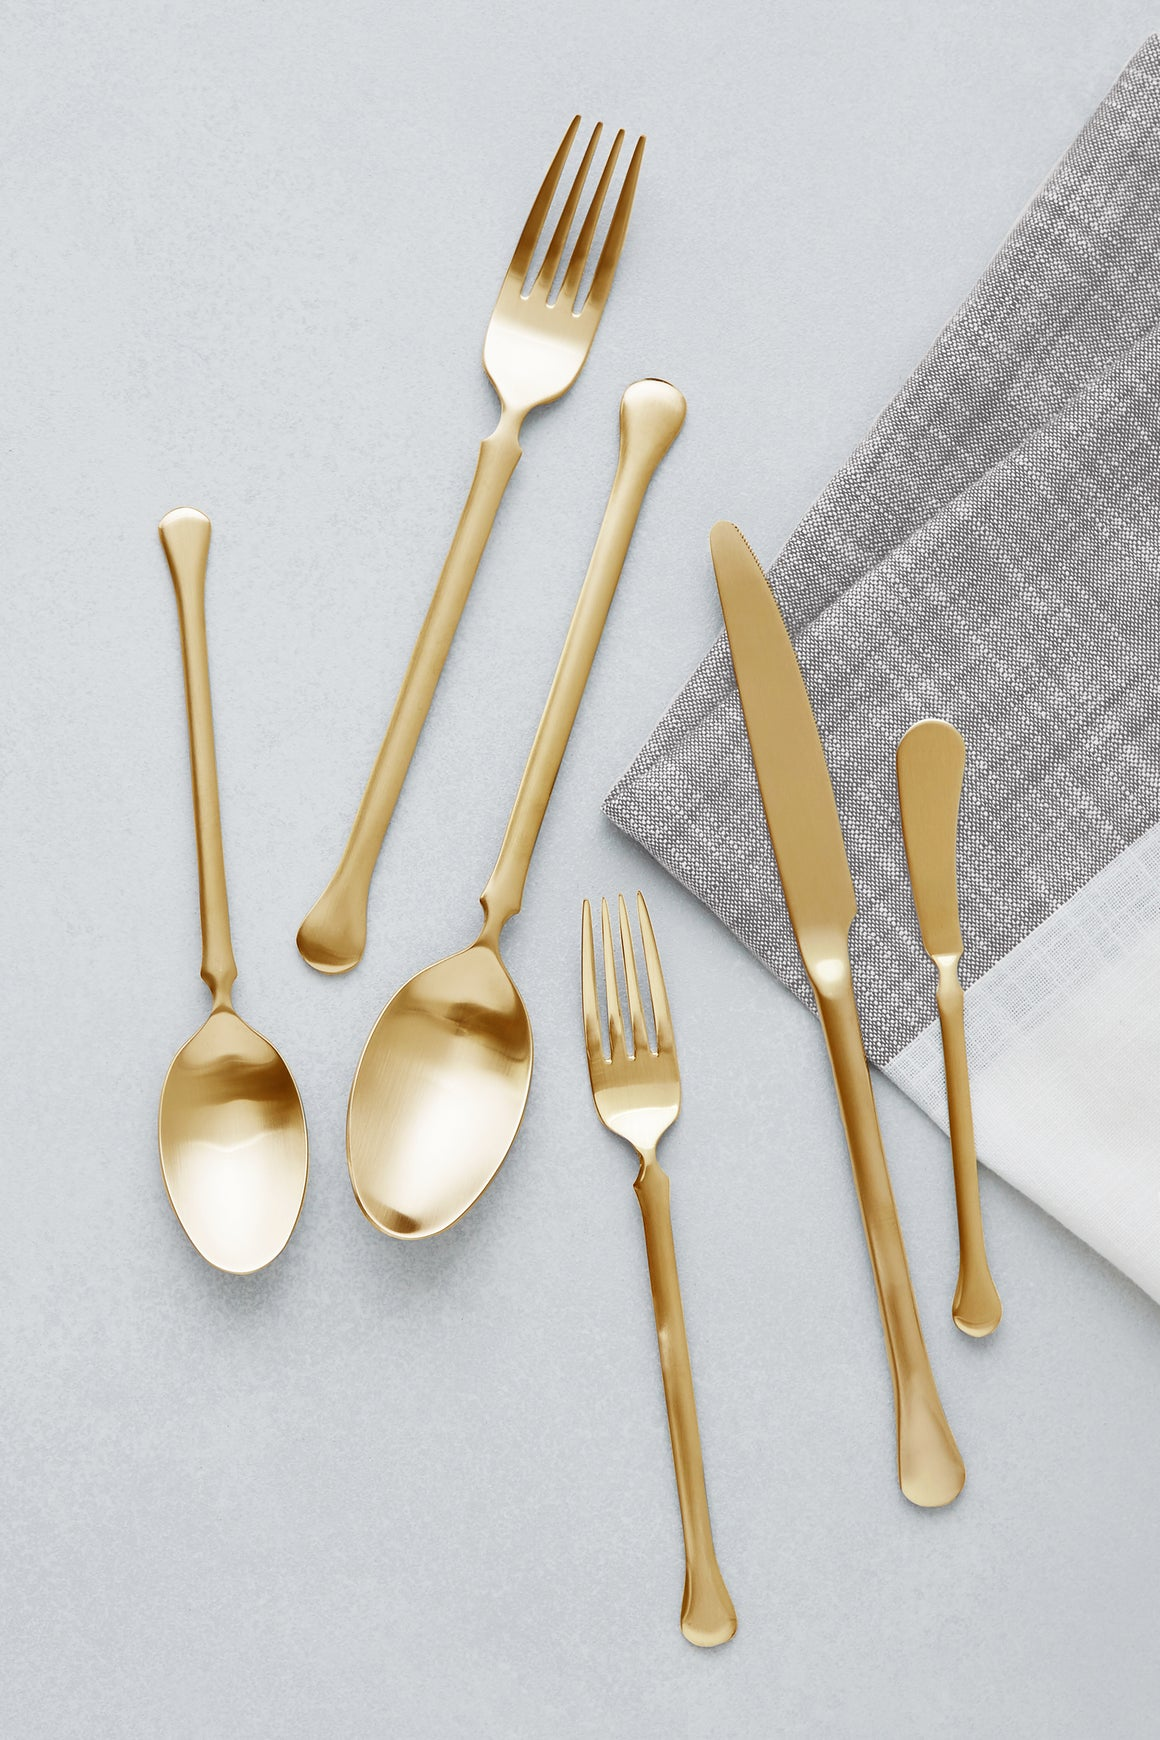 Matte 24k Gold Flatware Rentals in Los Angeles